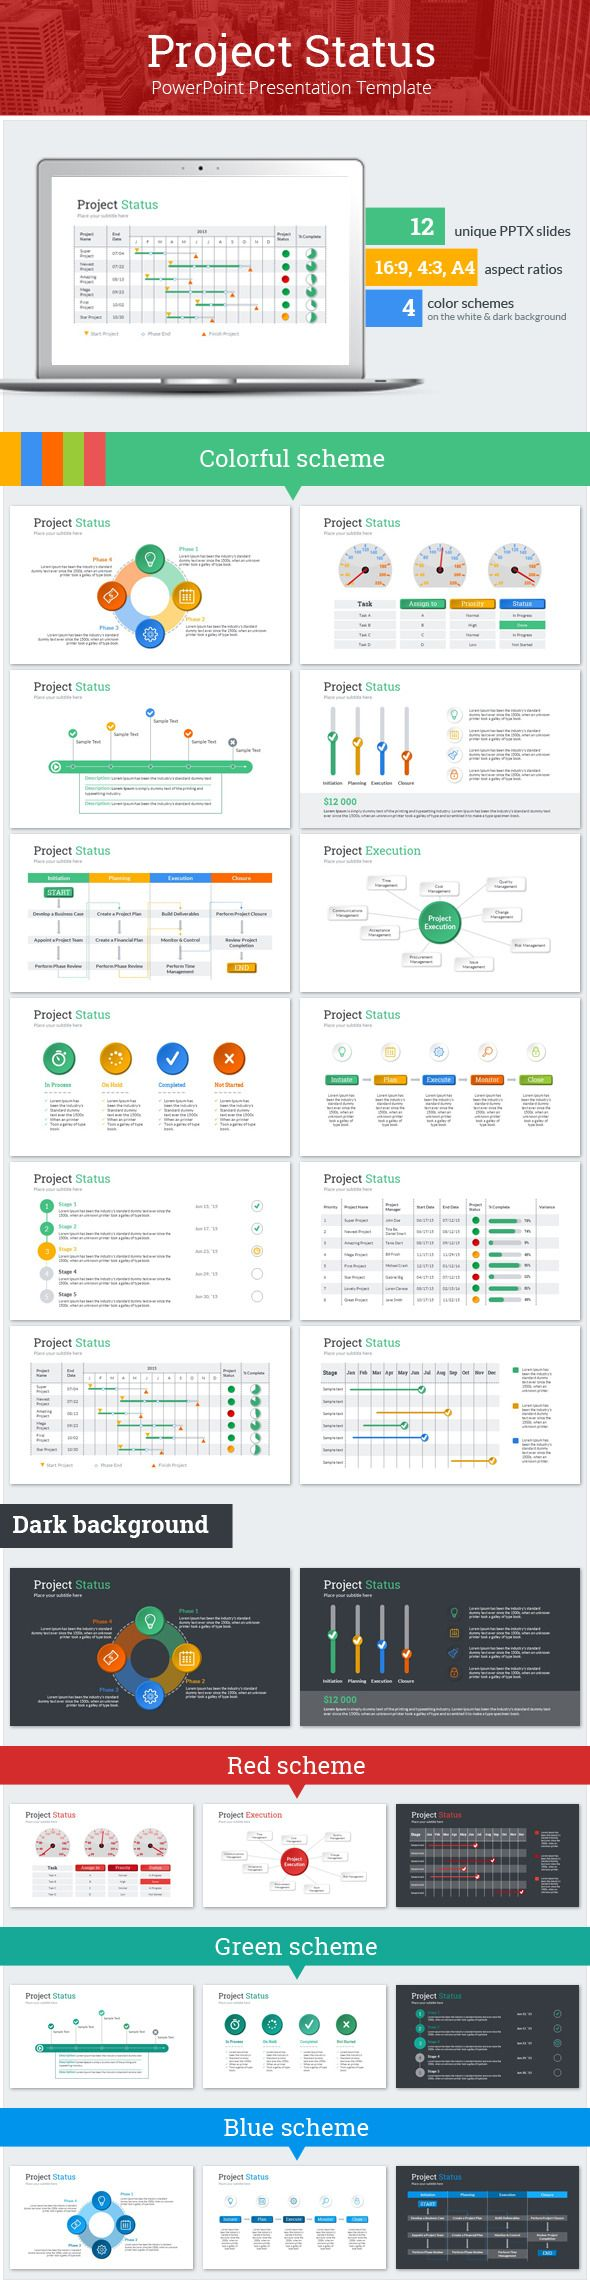 Project Status PowerPoint Presentation Template #stages #project status on hold #project not yet started • Click here to download ! http://graphicriver.net/item/project-status-powerpoint-presentation-template/11675969?ref=pxcr